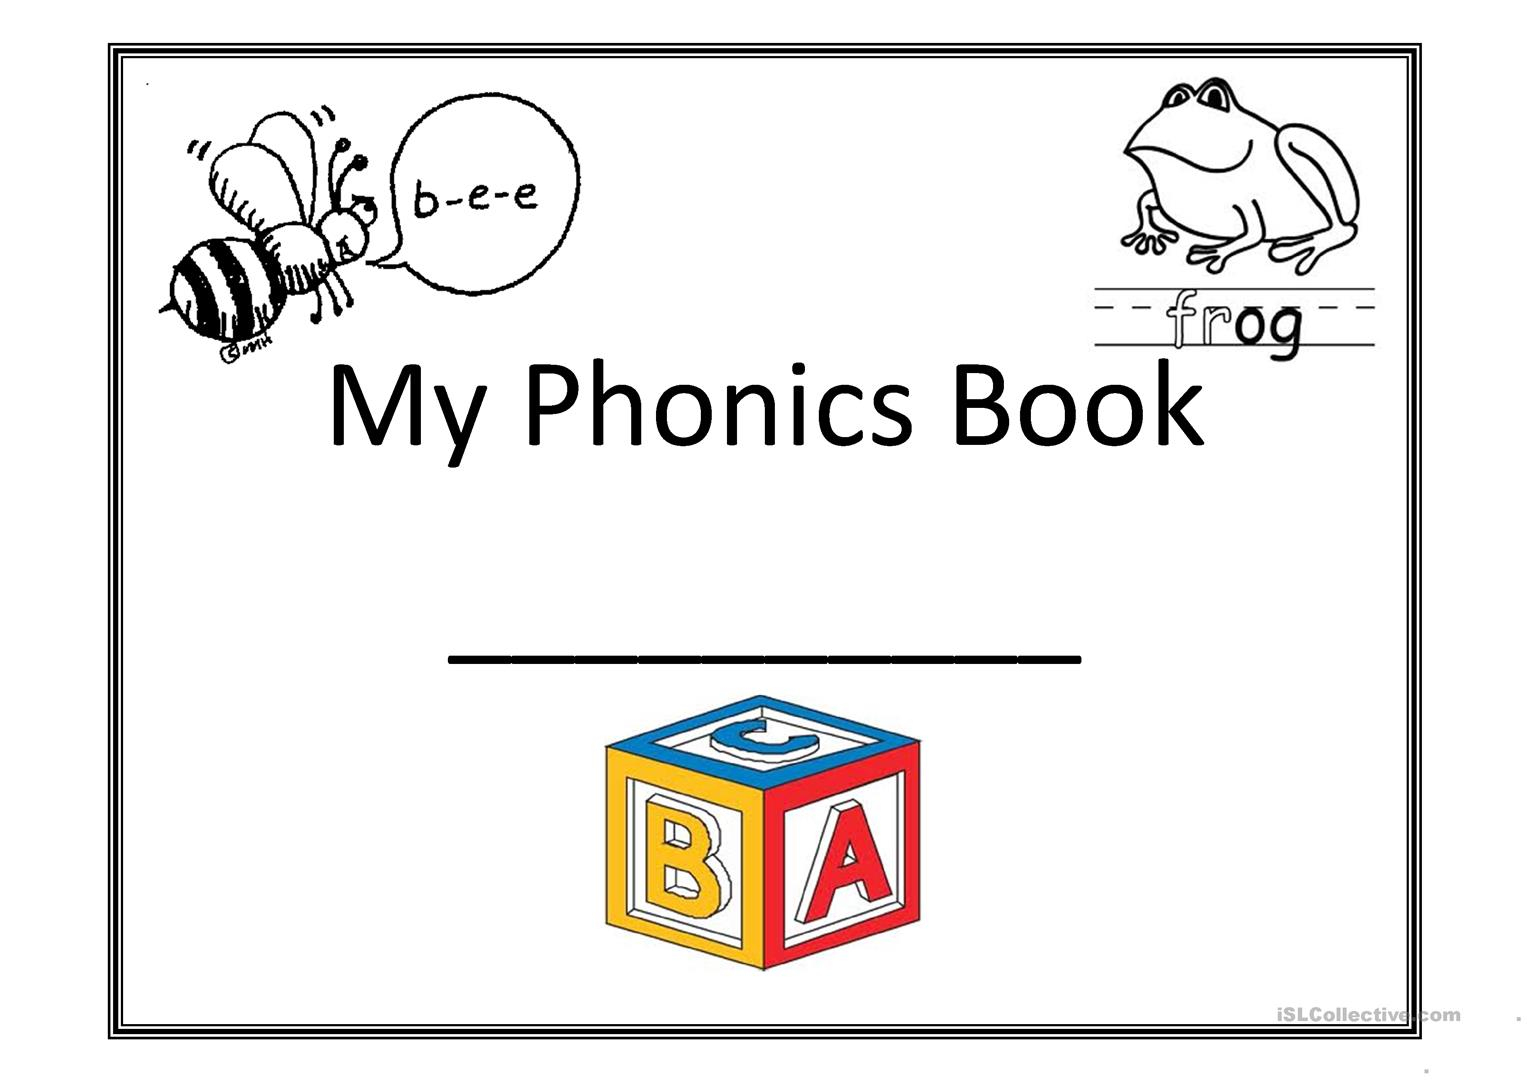 My Phonics Book Worksheet - Free Esl Printable Worksheets Made | Short A Printable Worksheets